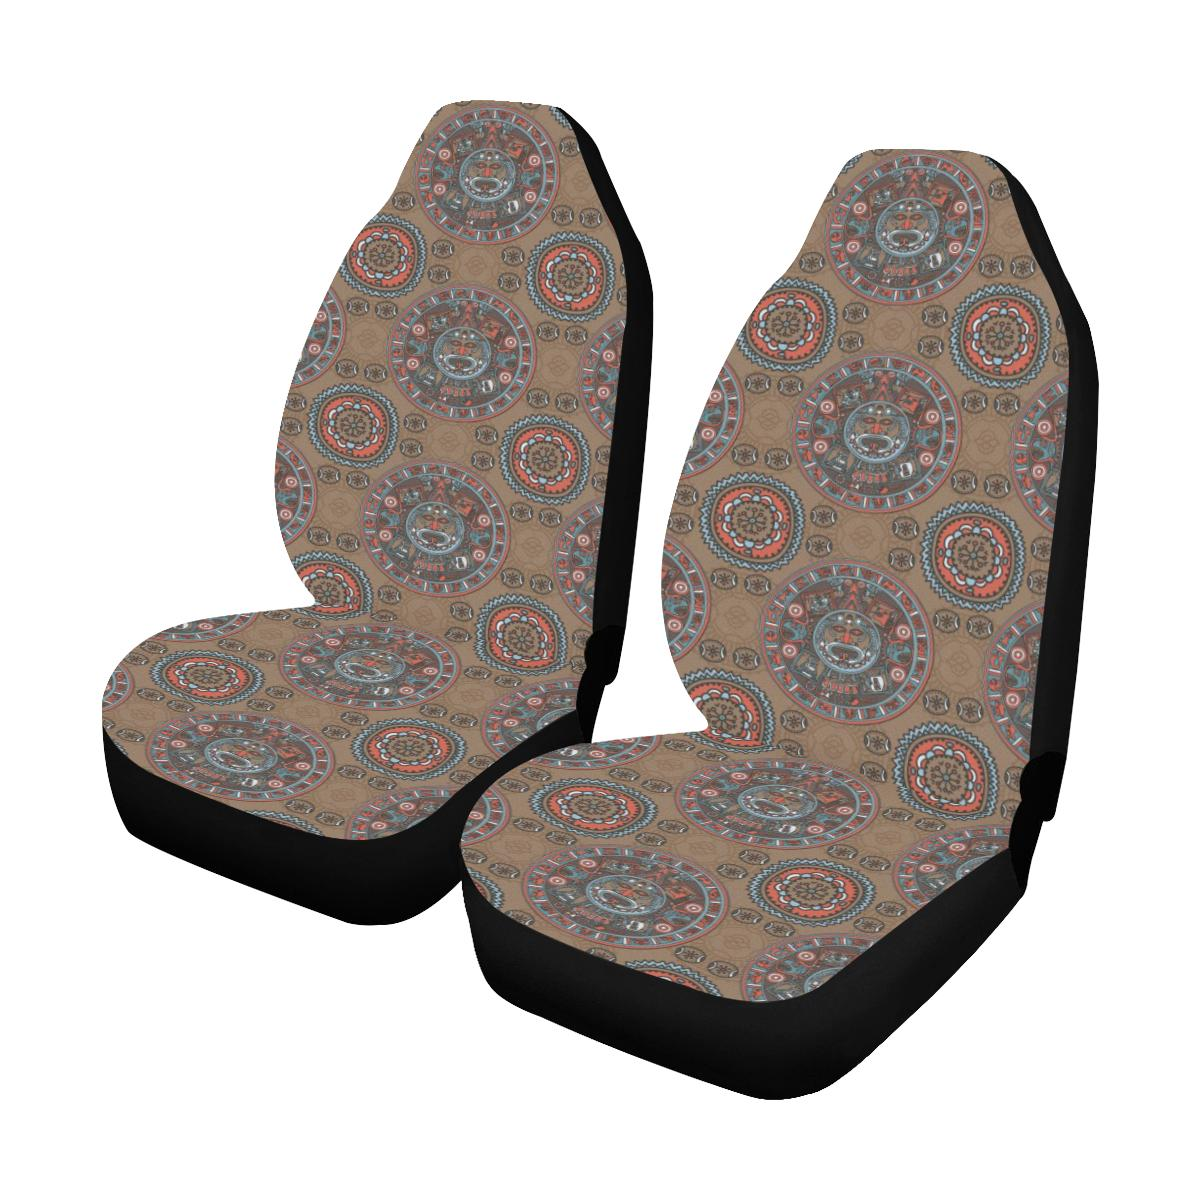 Calendar Aztec Pattern Print Design 03 Car Seat Covers (Set of 2)-JORJUNE.COM